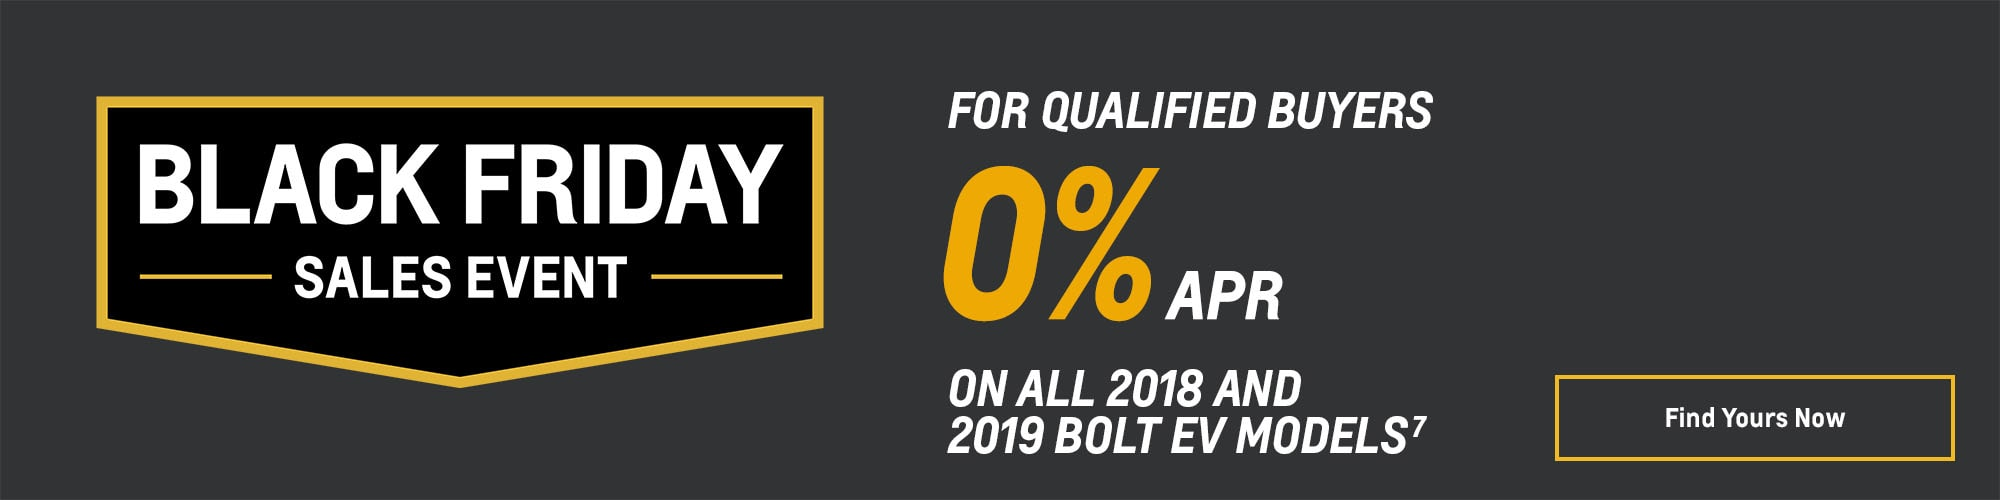 Black Friday Chevy Deals and Offers: Bolt EV 0% APR